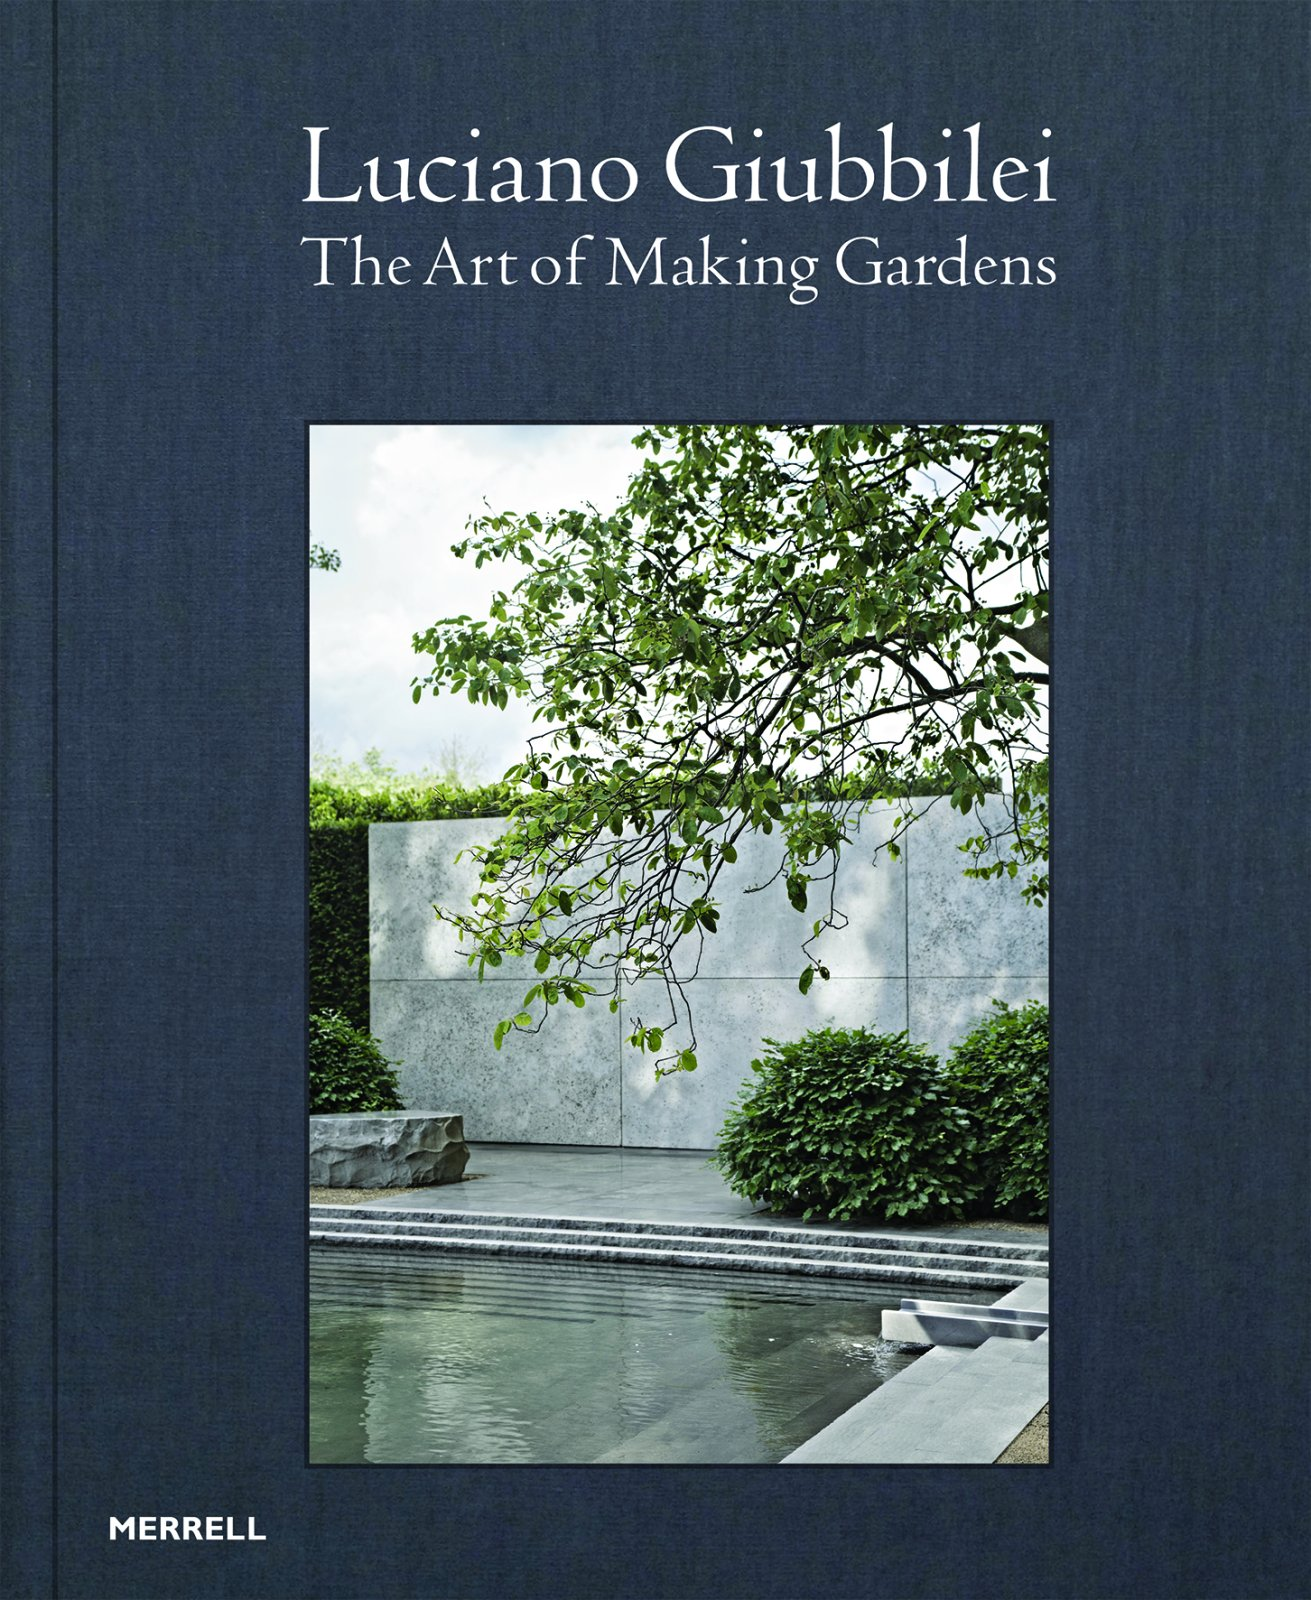 luciano book cover.jpg